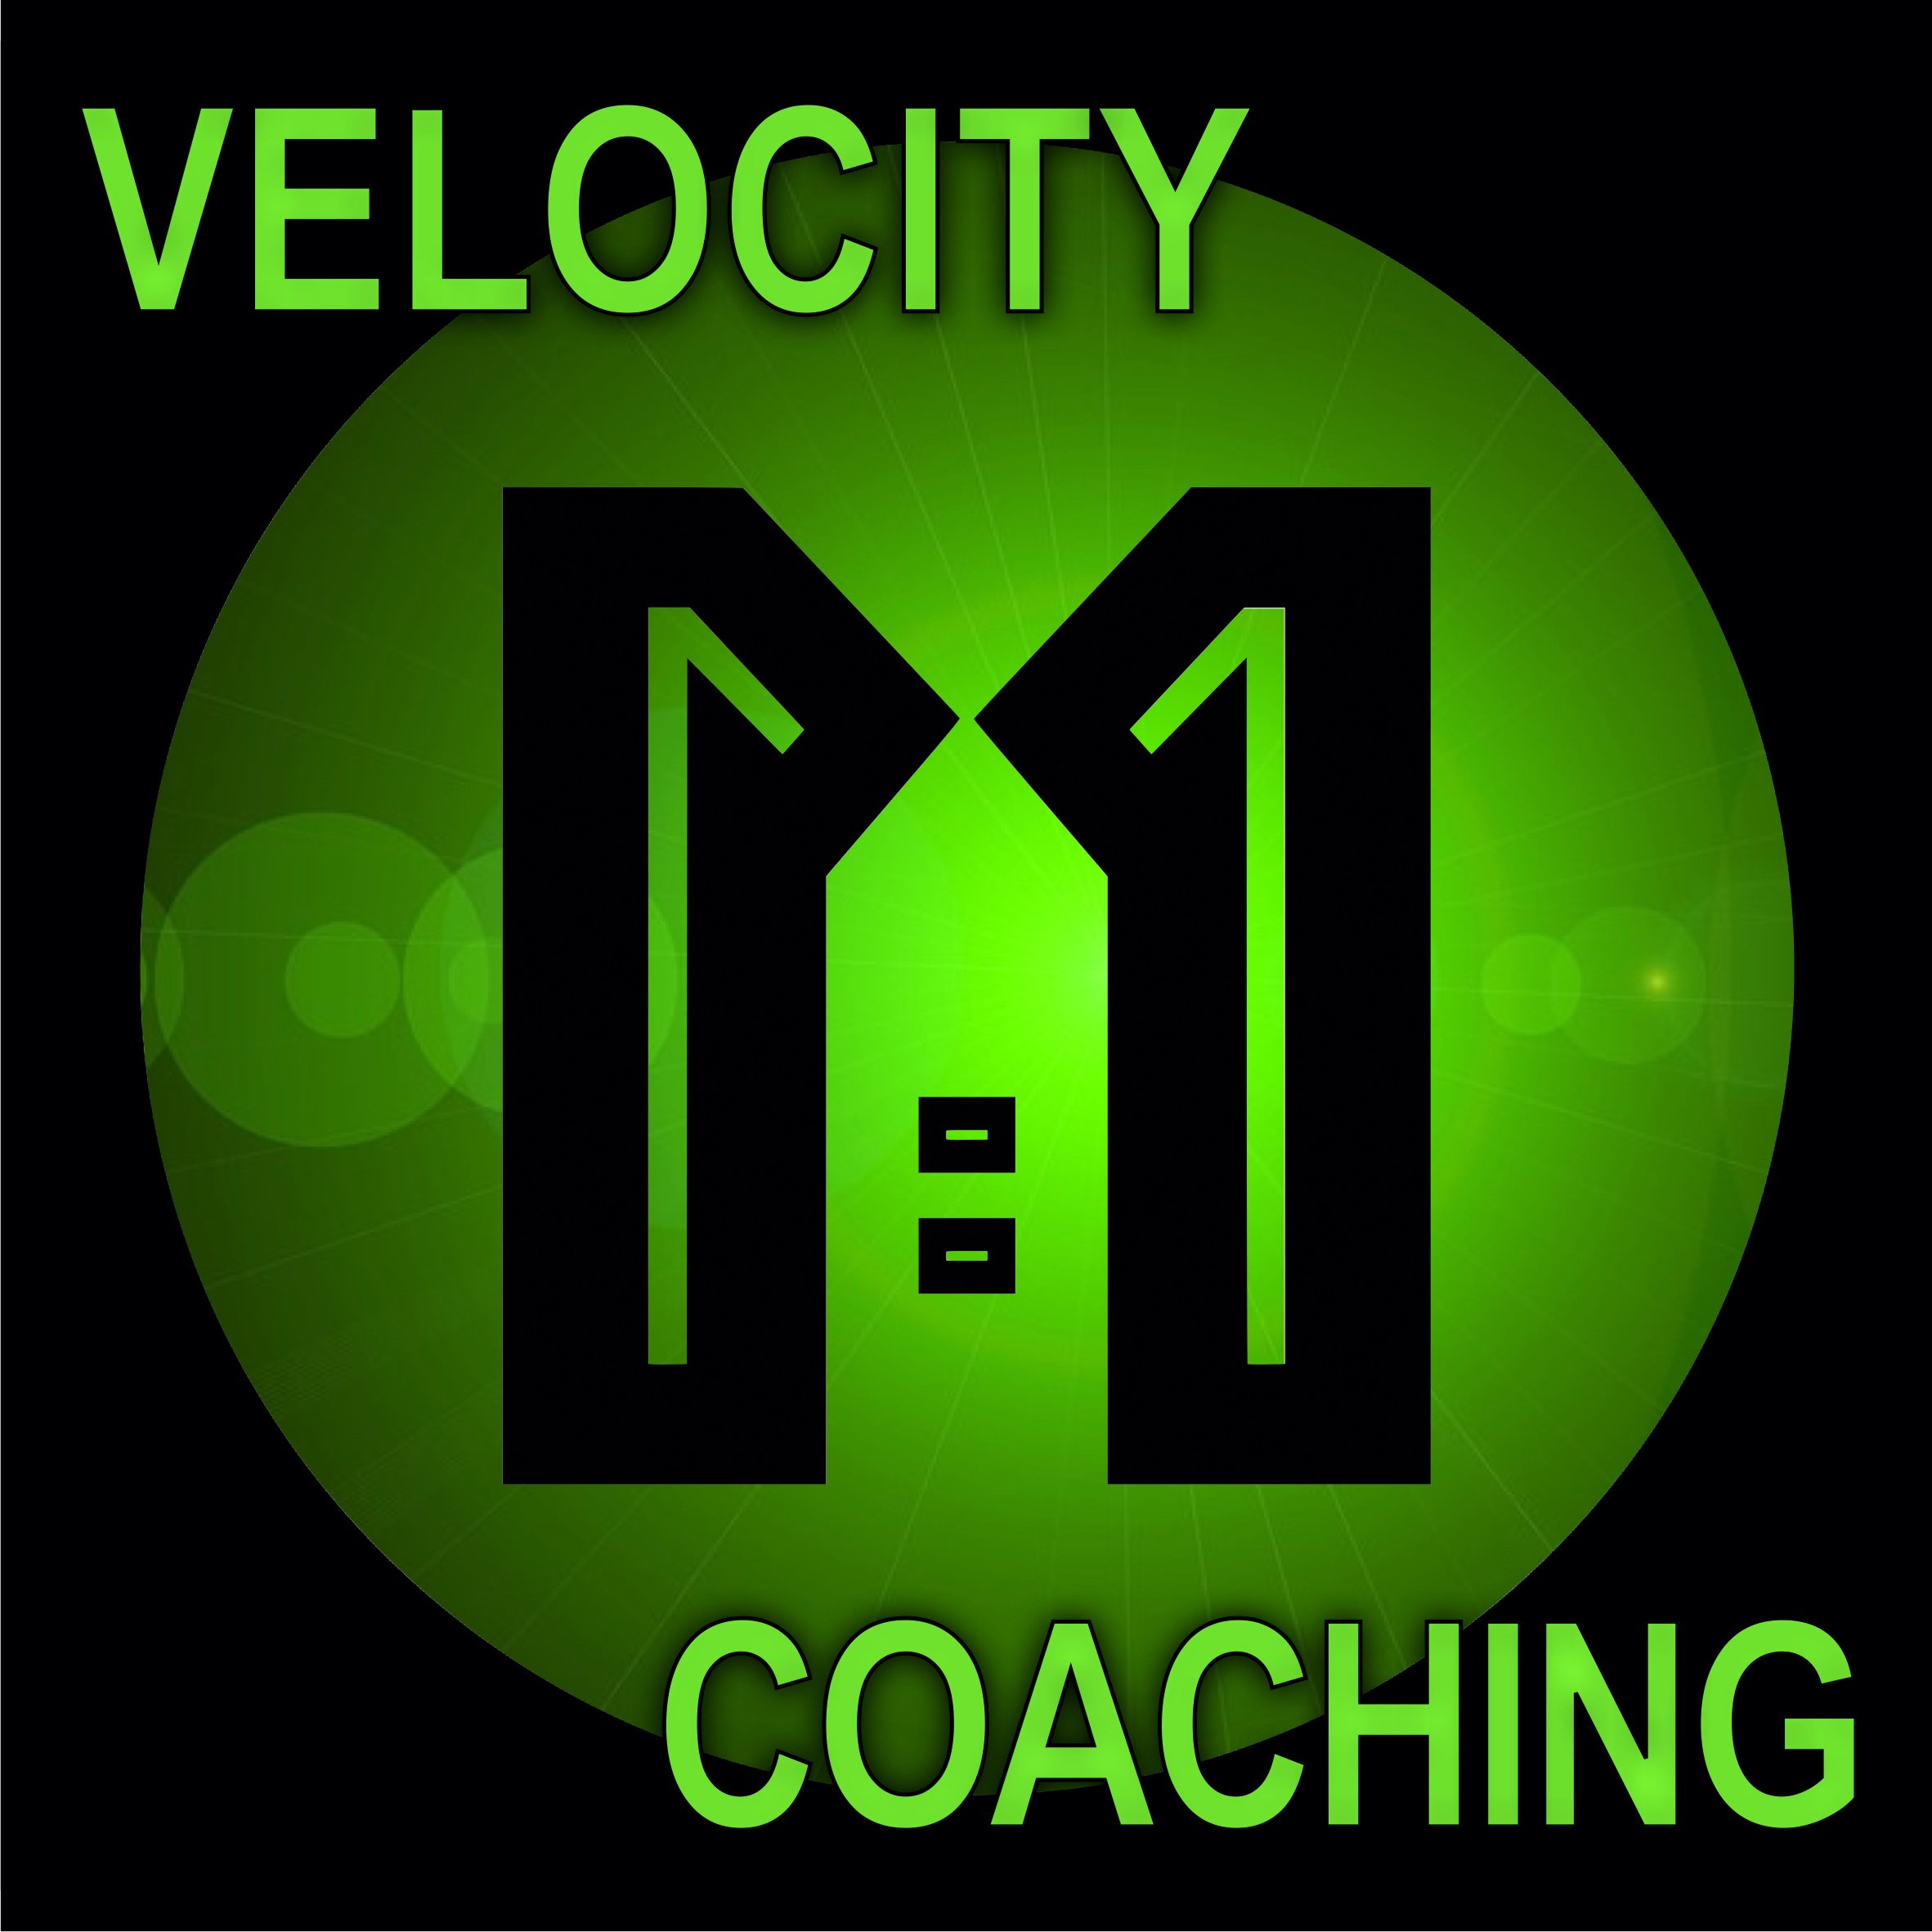 Velocity 1 to 1 coaching